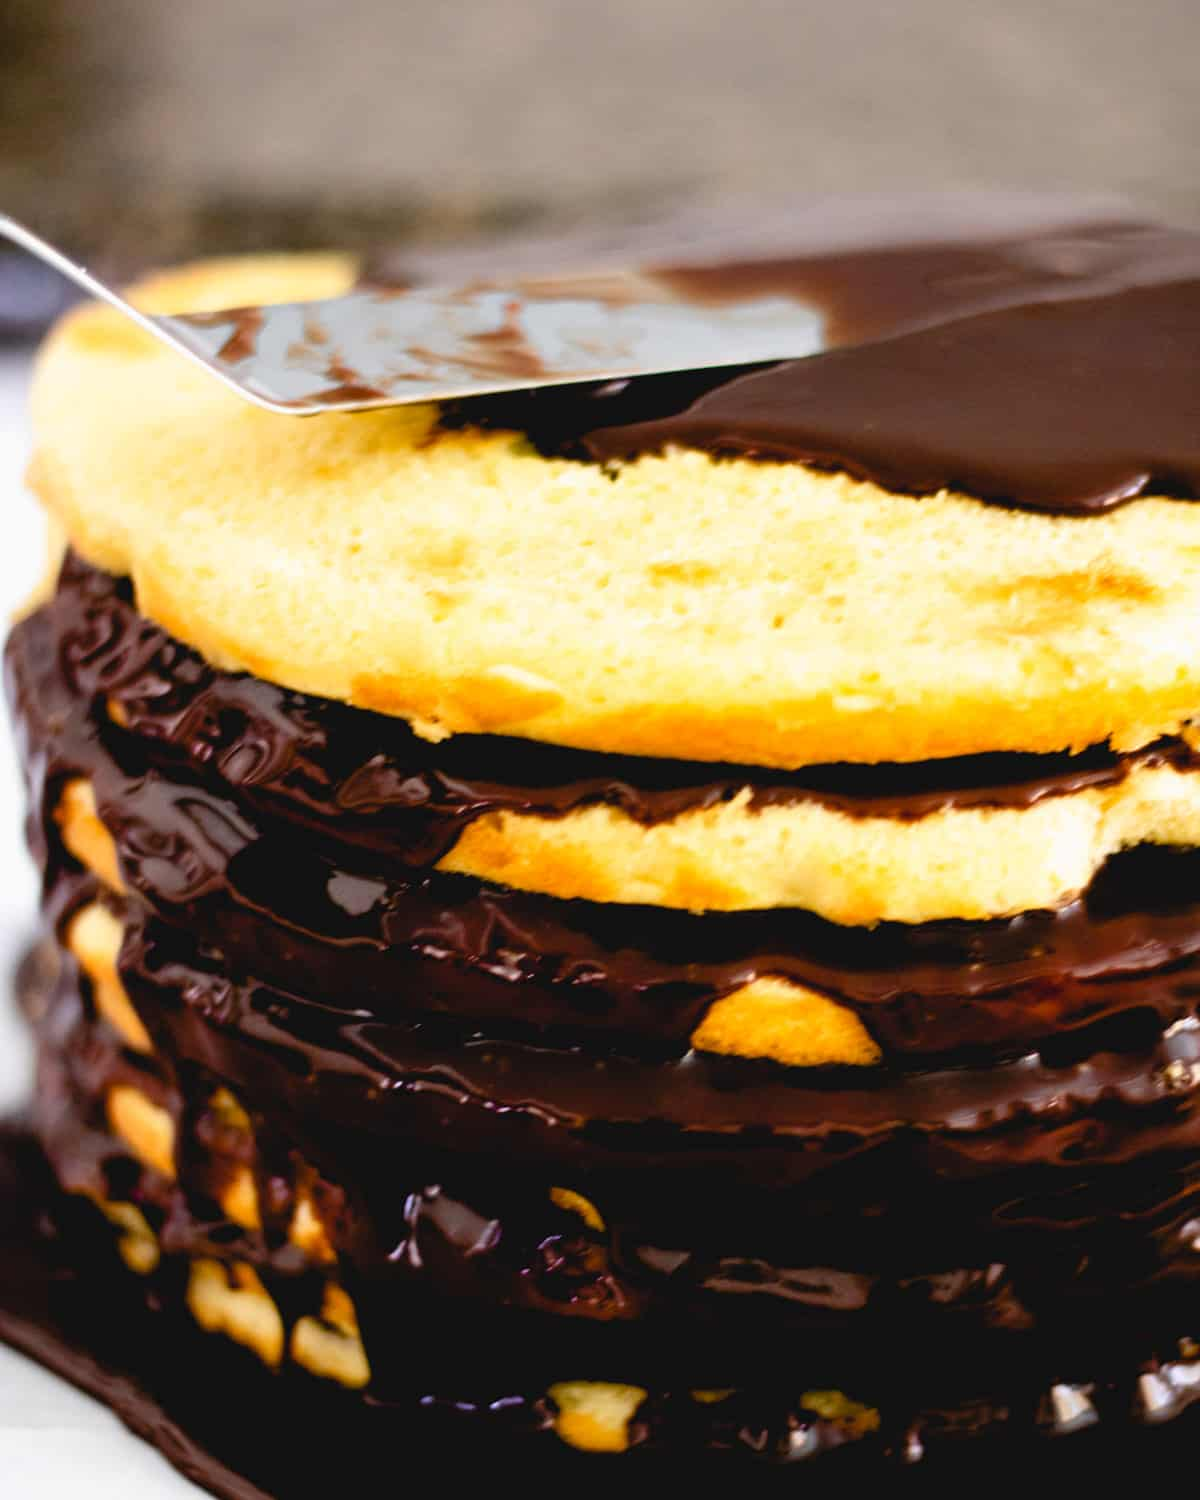 8 layers of thin yellow cake with fudge in between each layer. Spreading on the top layer.